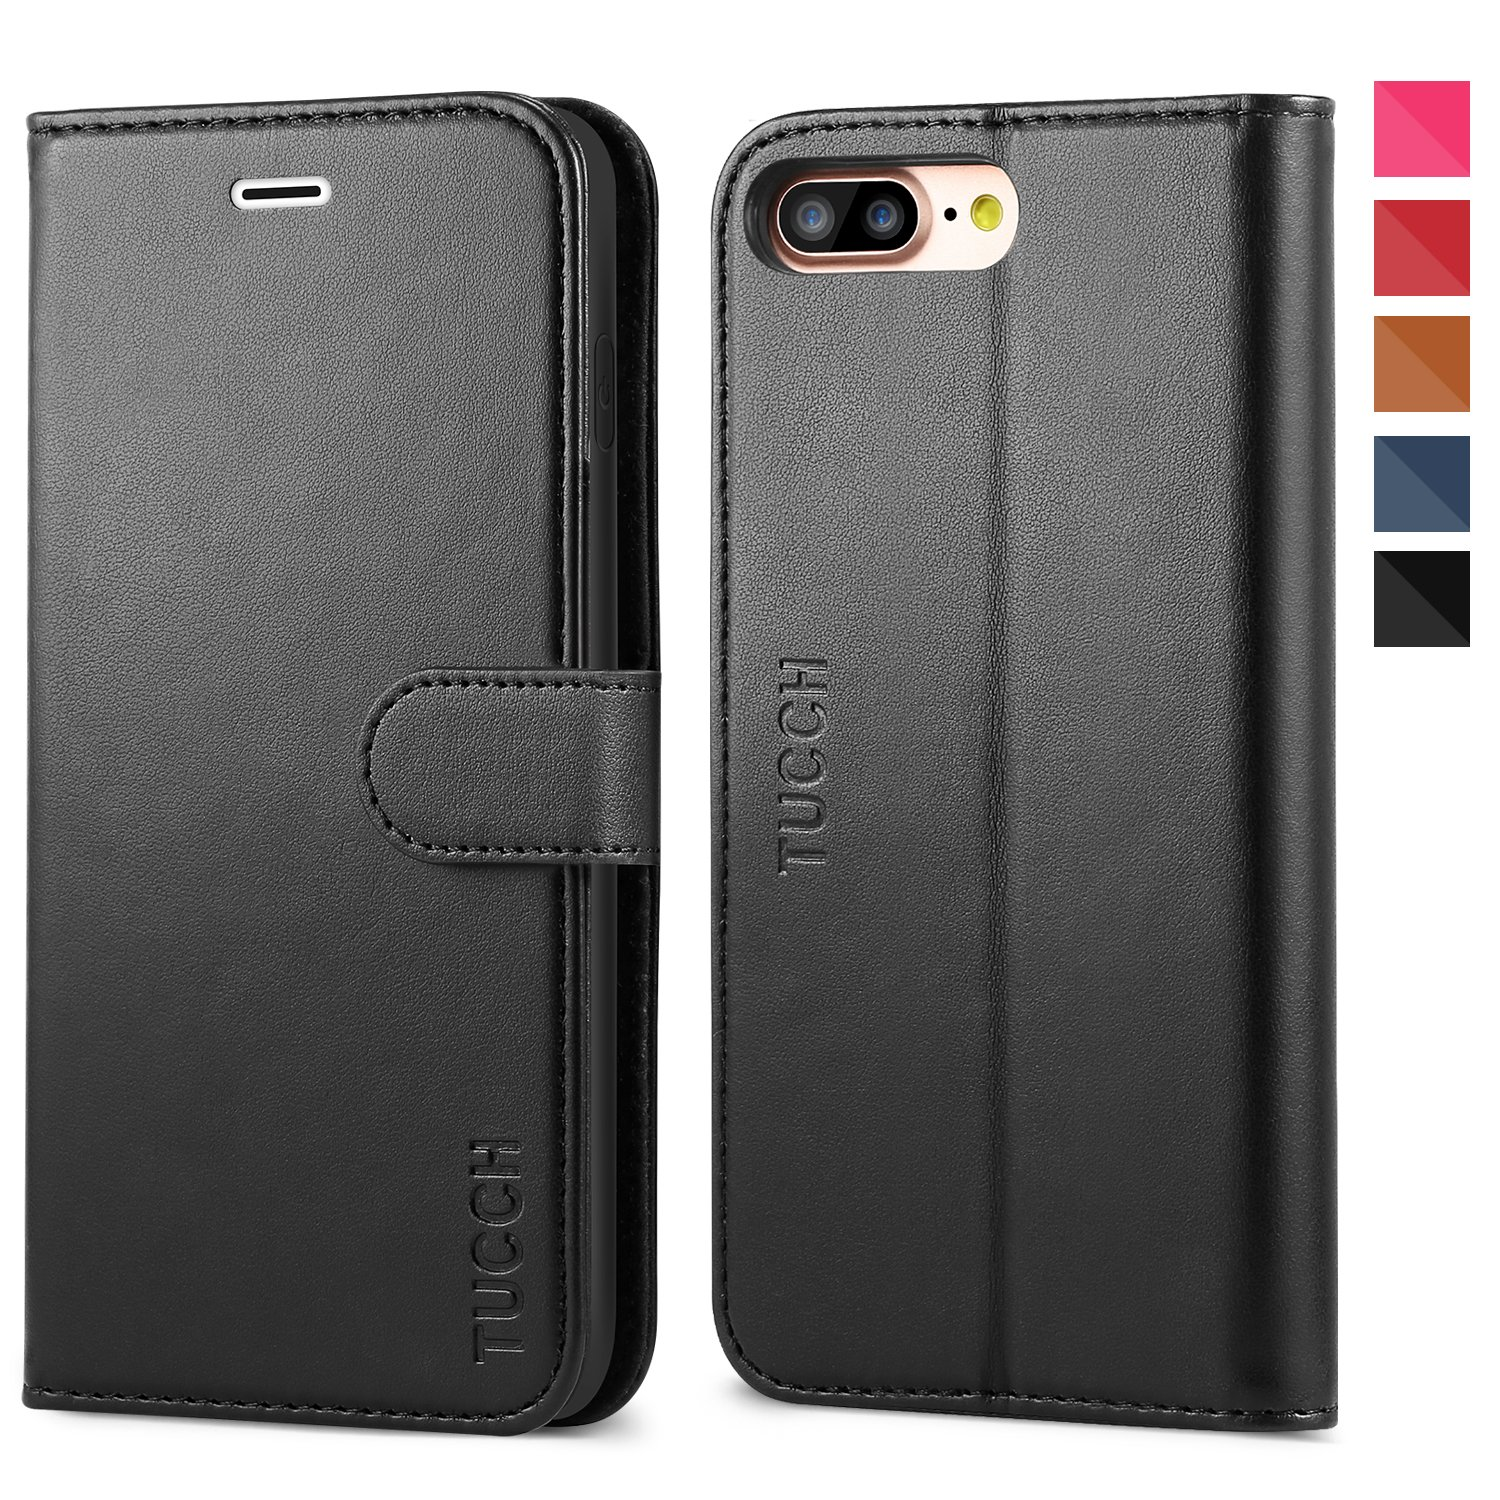 iPhone 8 Plus Wallet Case, iPhone 7 Plus Case, TUCCH Premium PU Leather Flip Folio Case with Card Slot, Stand Holder, Magnetic Closure [TPU Shockproof Interior Case] Compatible iPhone 7/8 Plus, Black by TUCCH